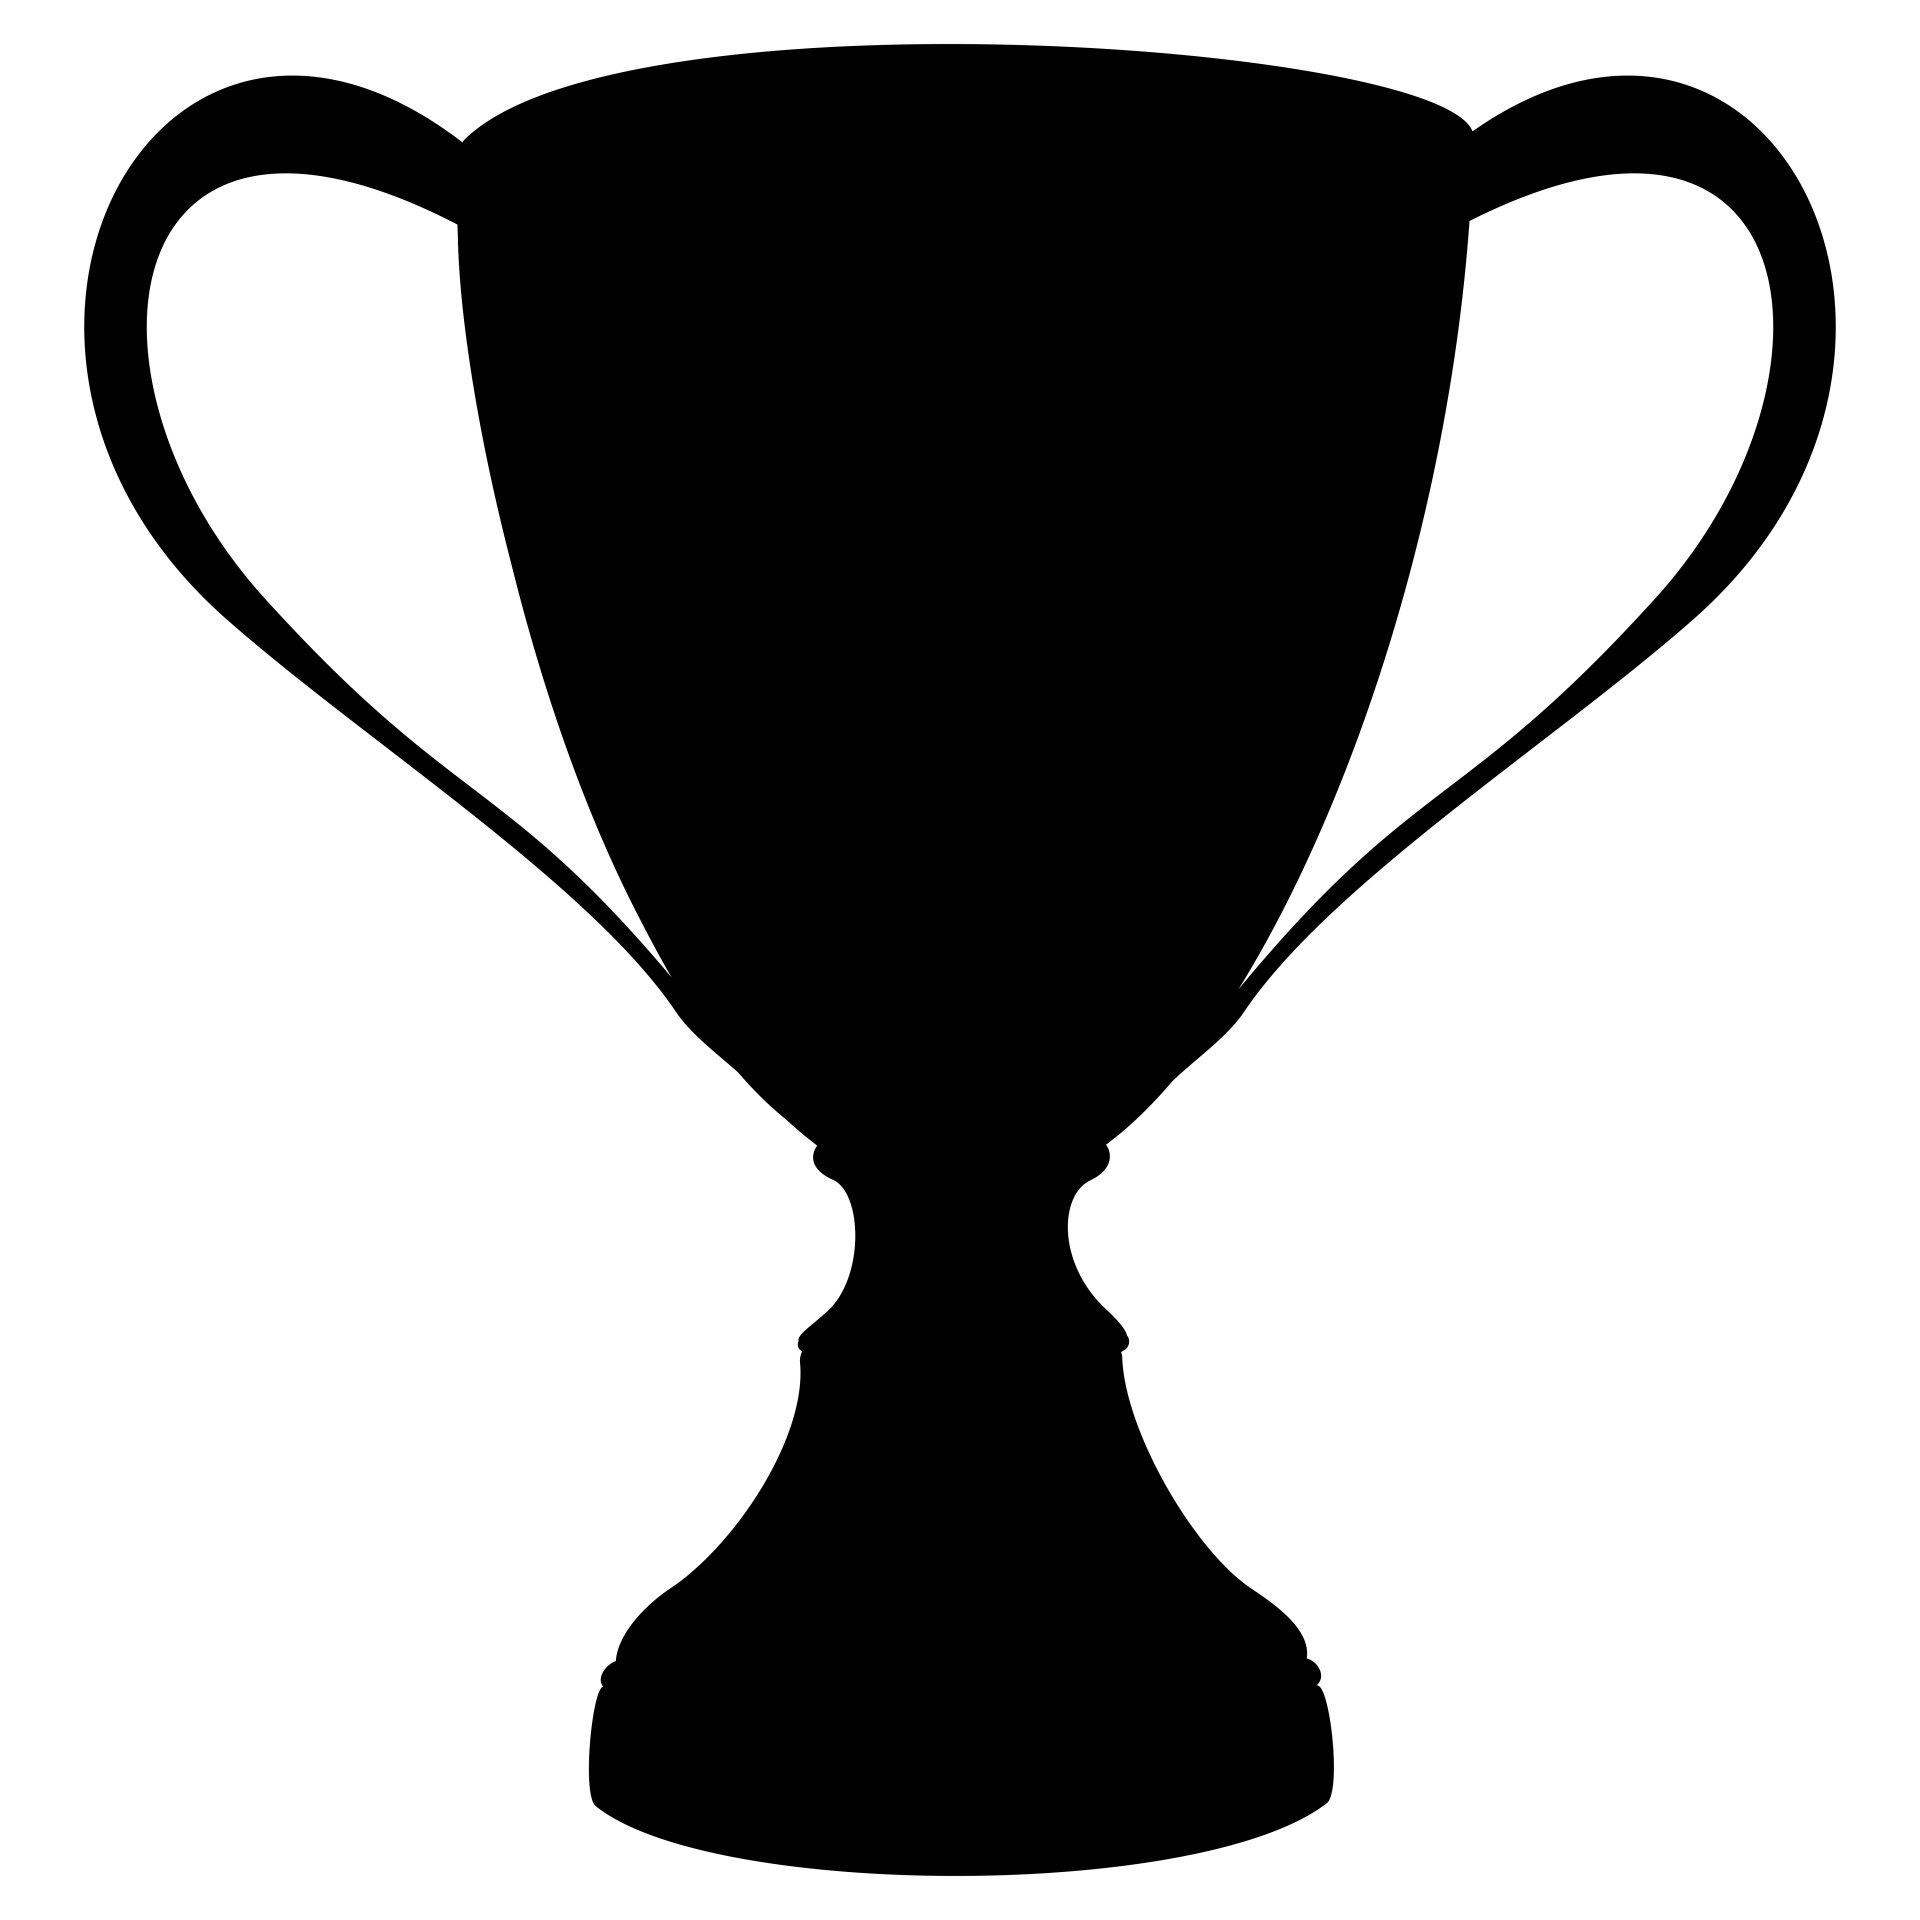 1920x1920 Gold Cup Silhouette Free Stock Photo